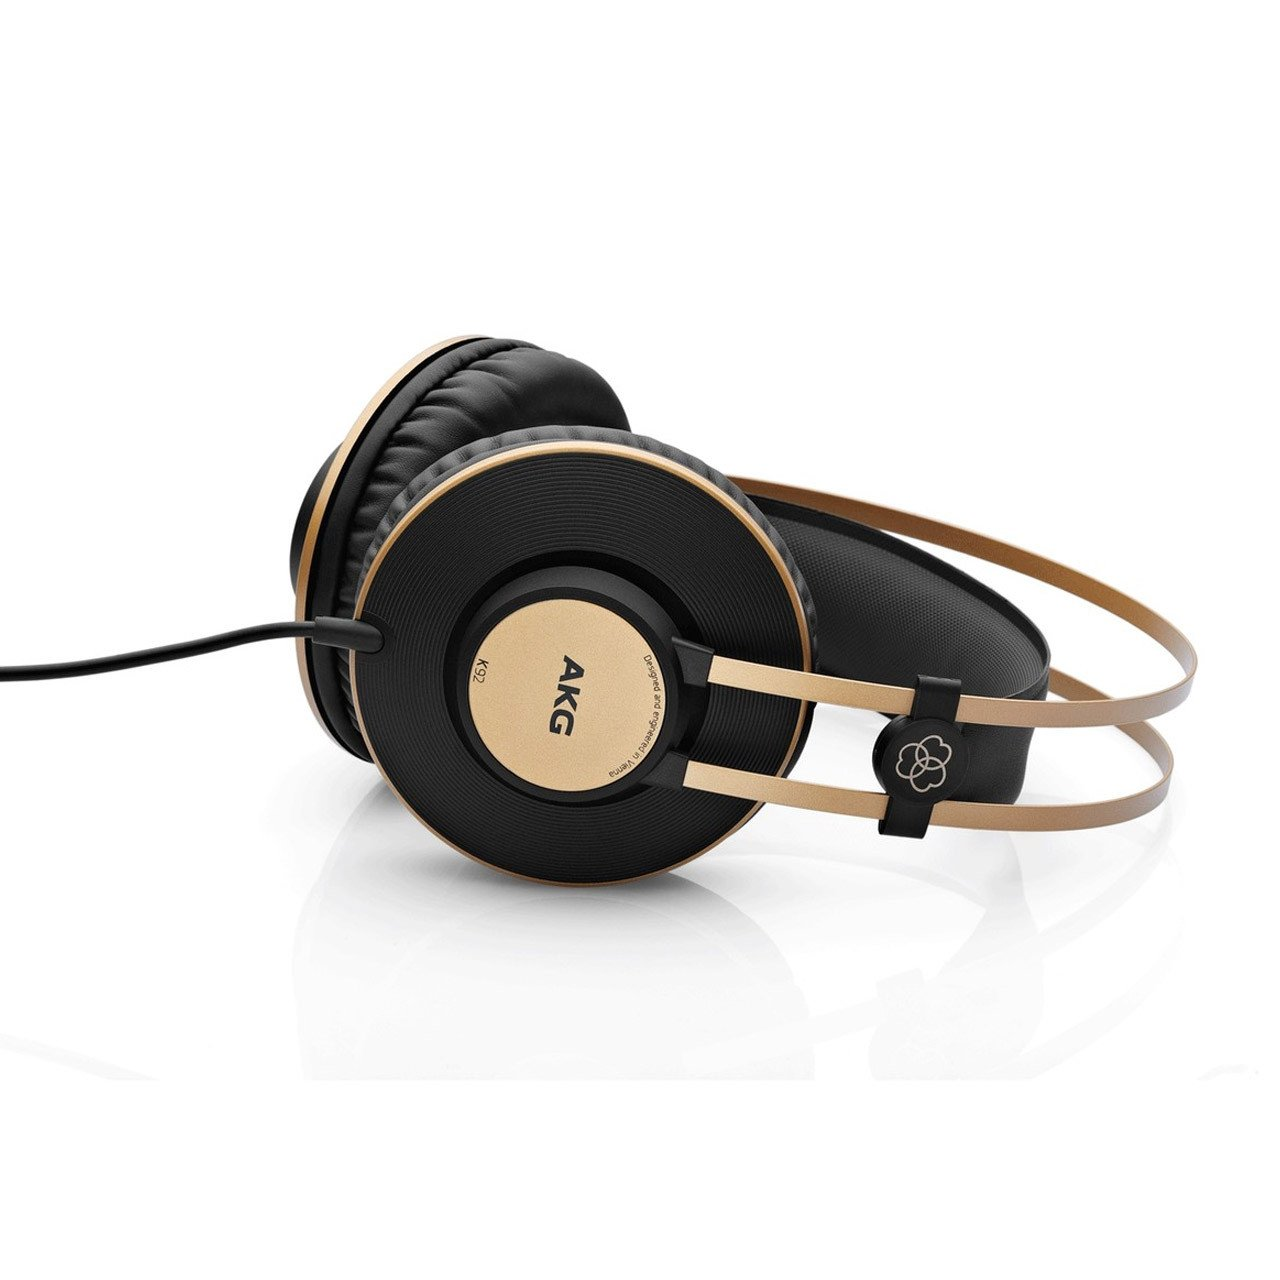 Closed Headphones - AKG K92 Closed-Back Headphones